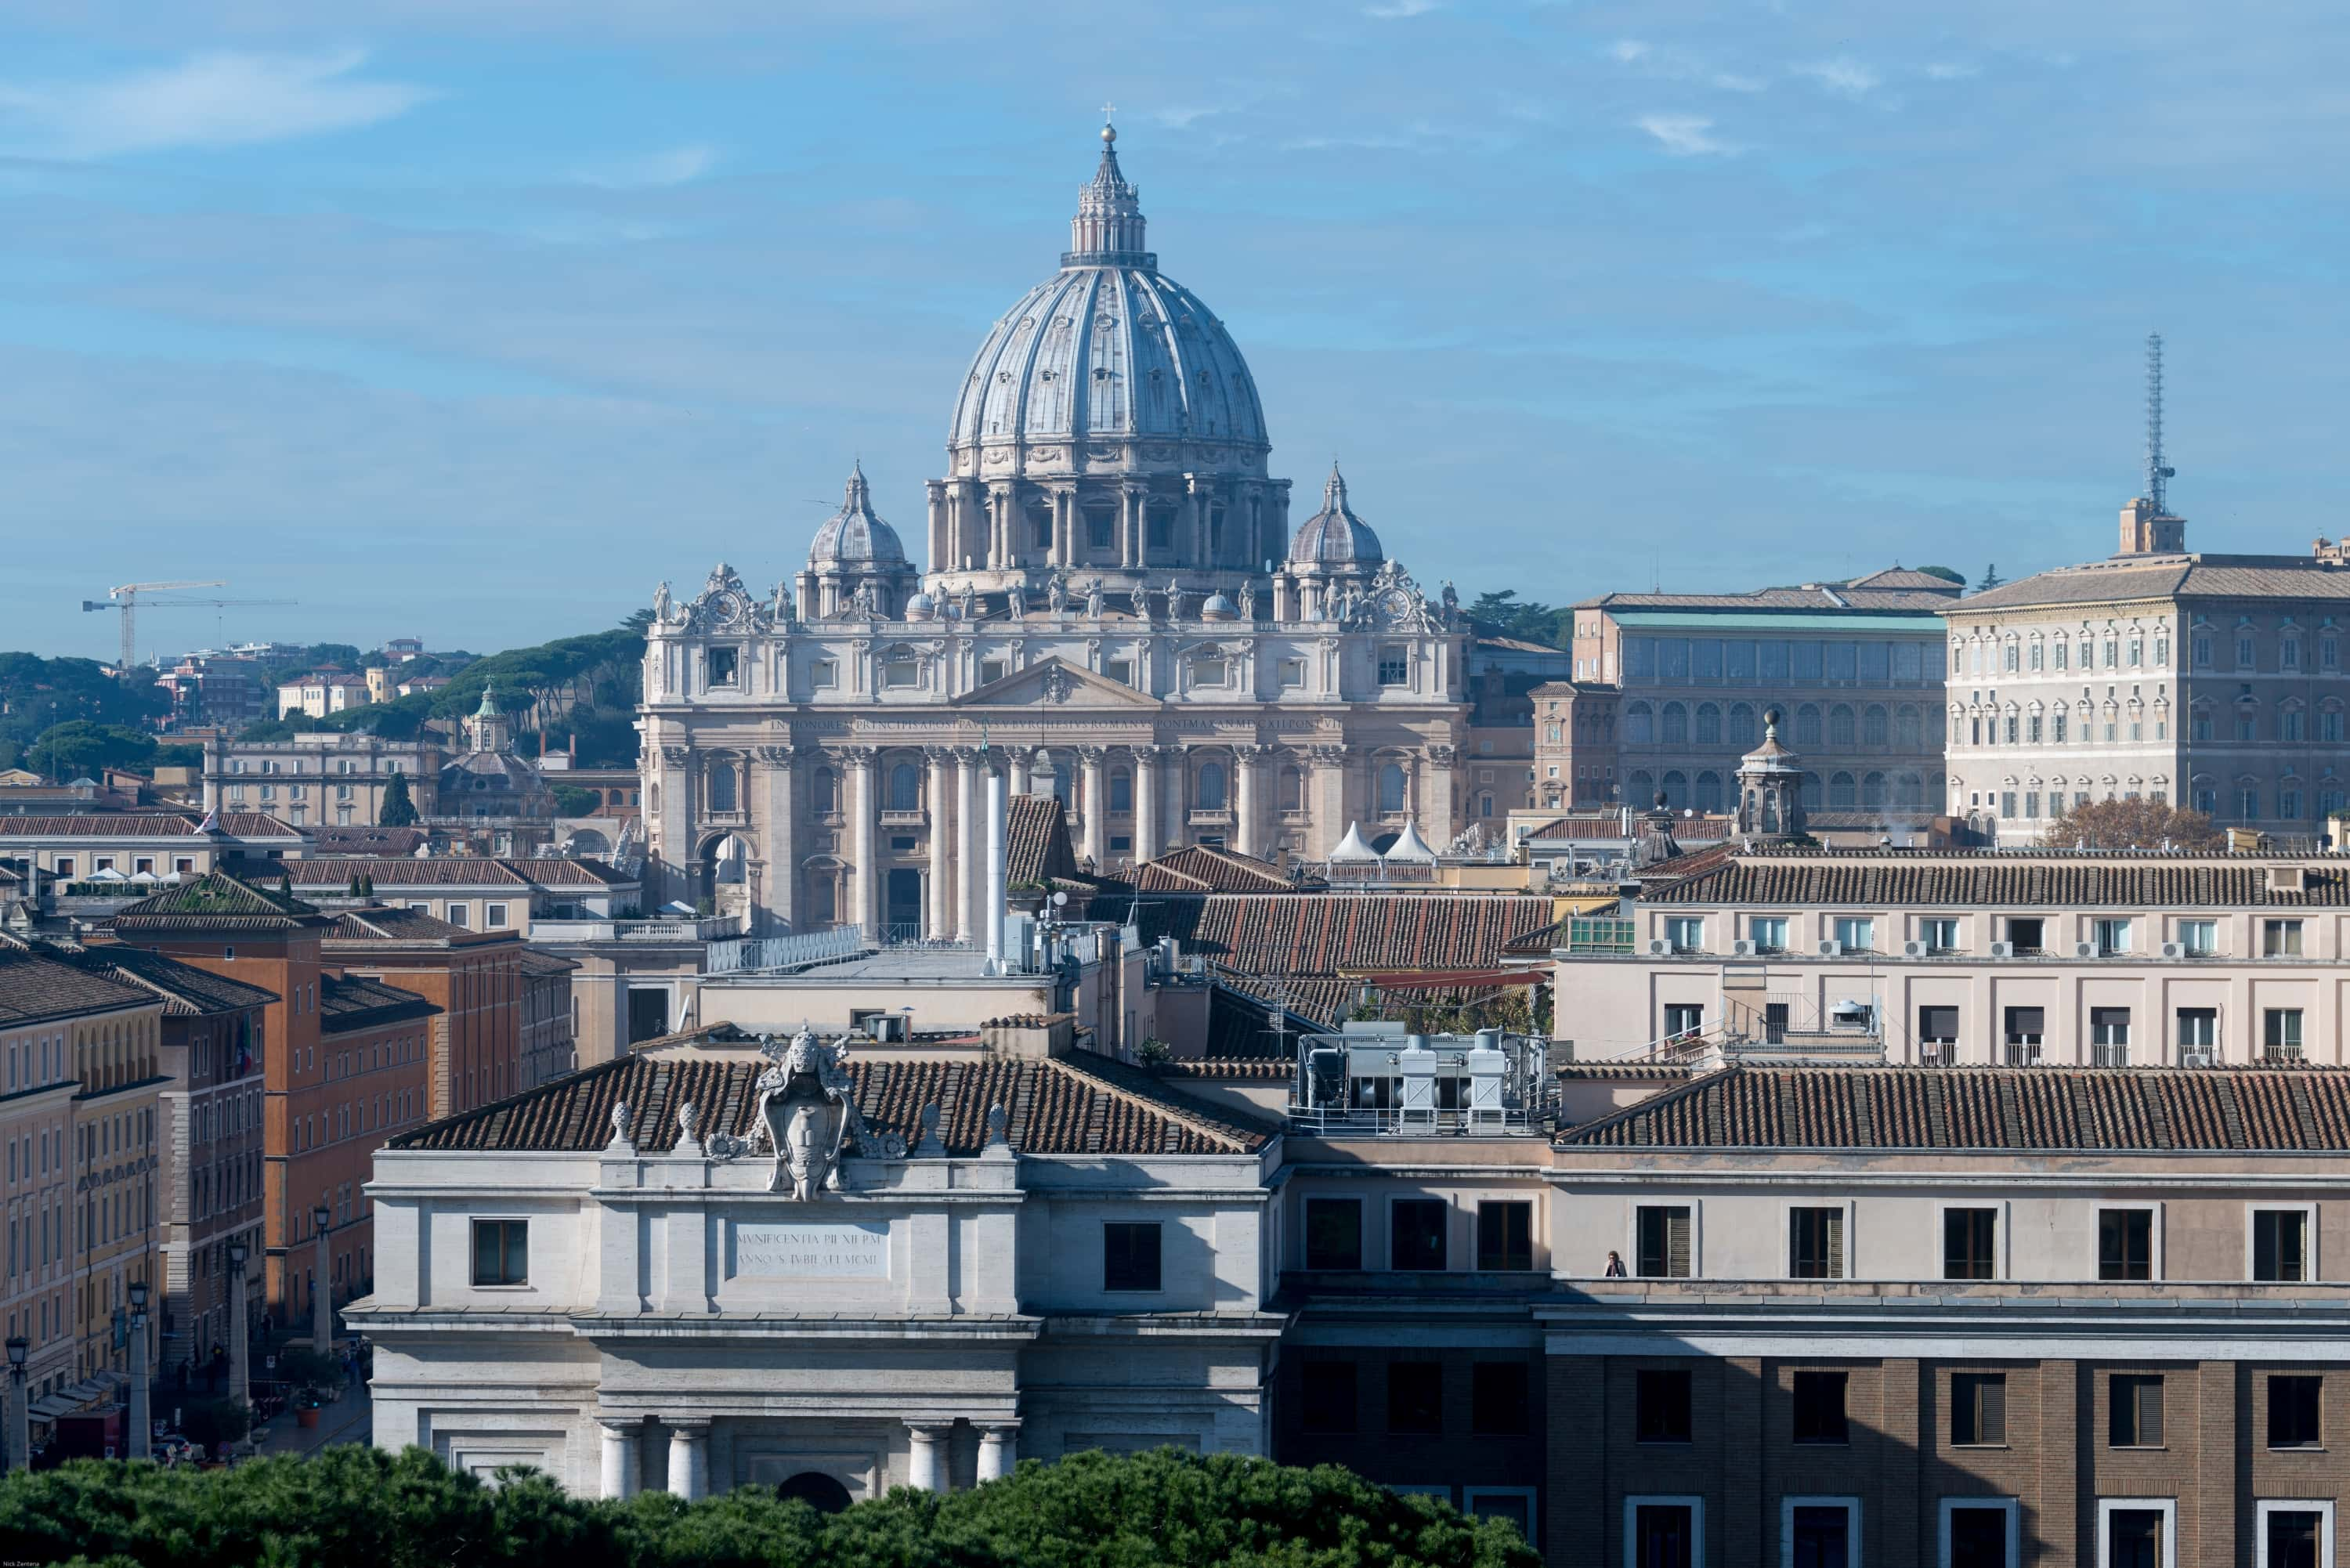 St. Peter's Basilica Rome from Castel Sant Angelo